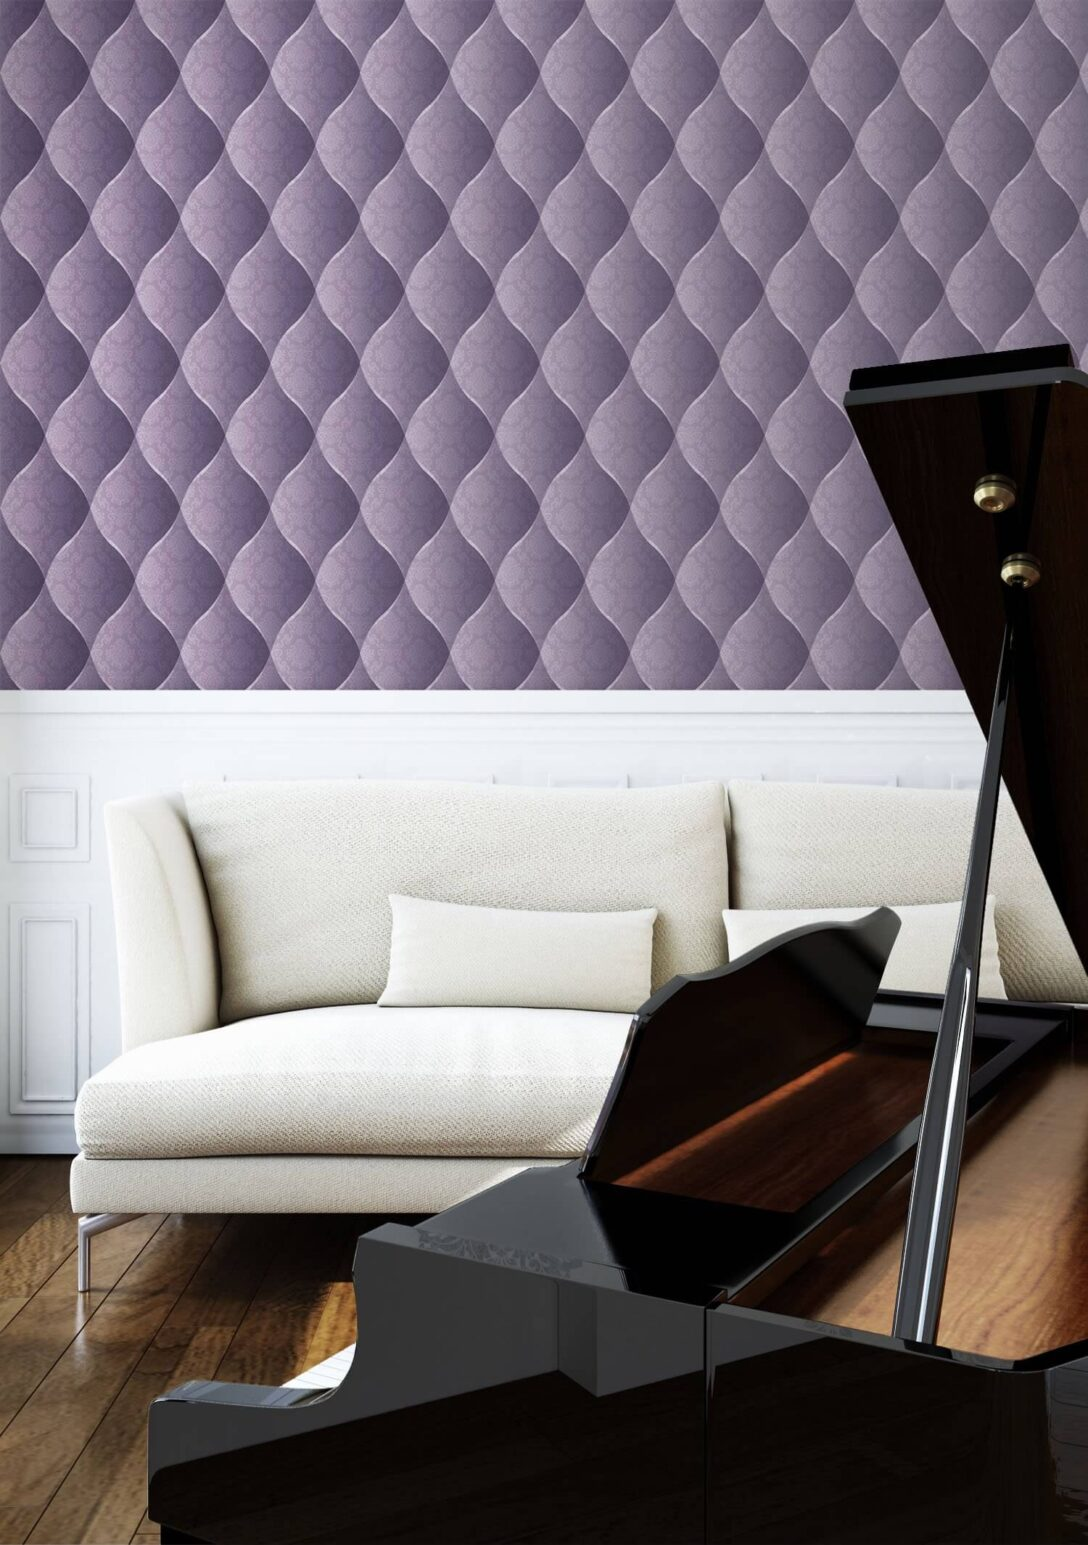 Large Size of Chesterfield Sofa Samt Lila Lilah Lilac Cushions Bed Covers Raymour And Flanigan Chair Husse 3 Sitzer Big Mit Hocker Weiß Garnitur Muuto Himolla Englisches Sofa Sofa Lila